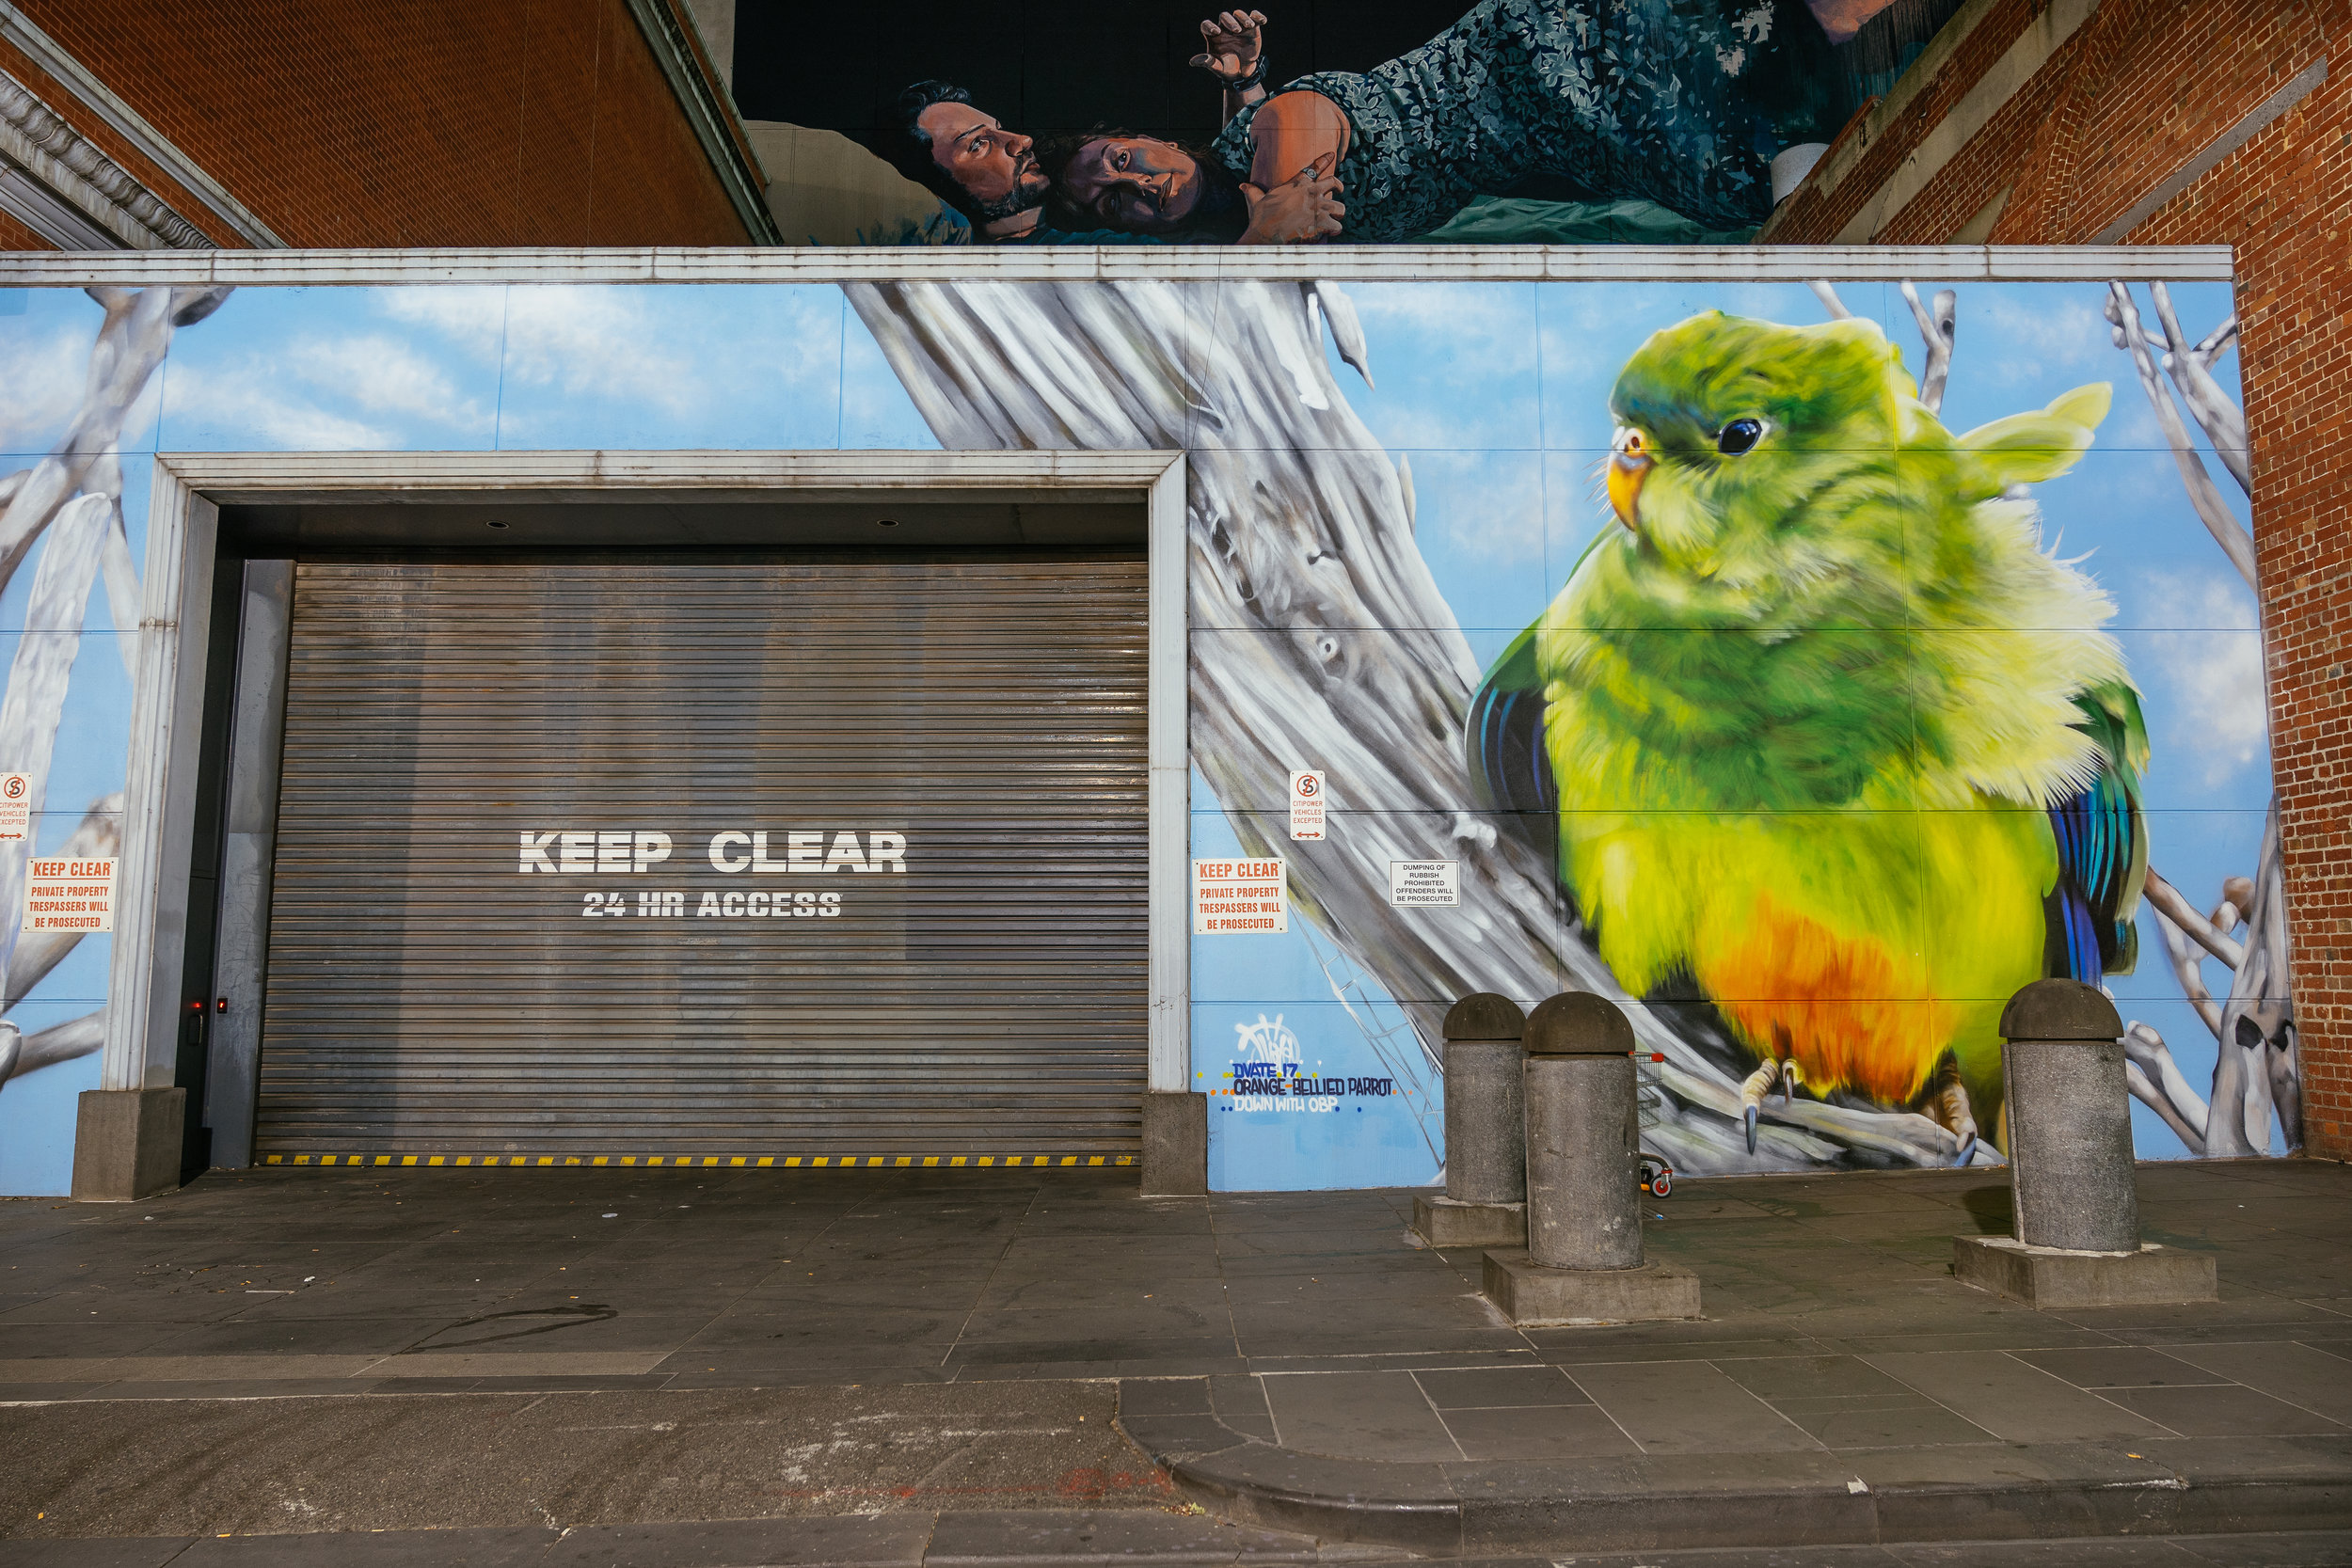 The Orange bellied parrot by Dvate. Only 30-50 birds remain in the wild. The parrots migrate across Bass strait from Victoria to Tasmania. Mural in Little Bourke St, Melbourne